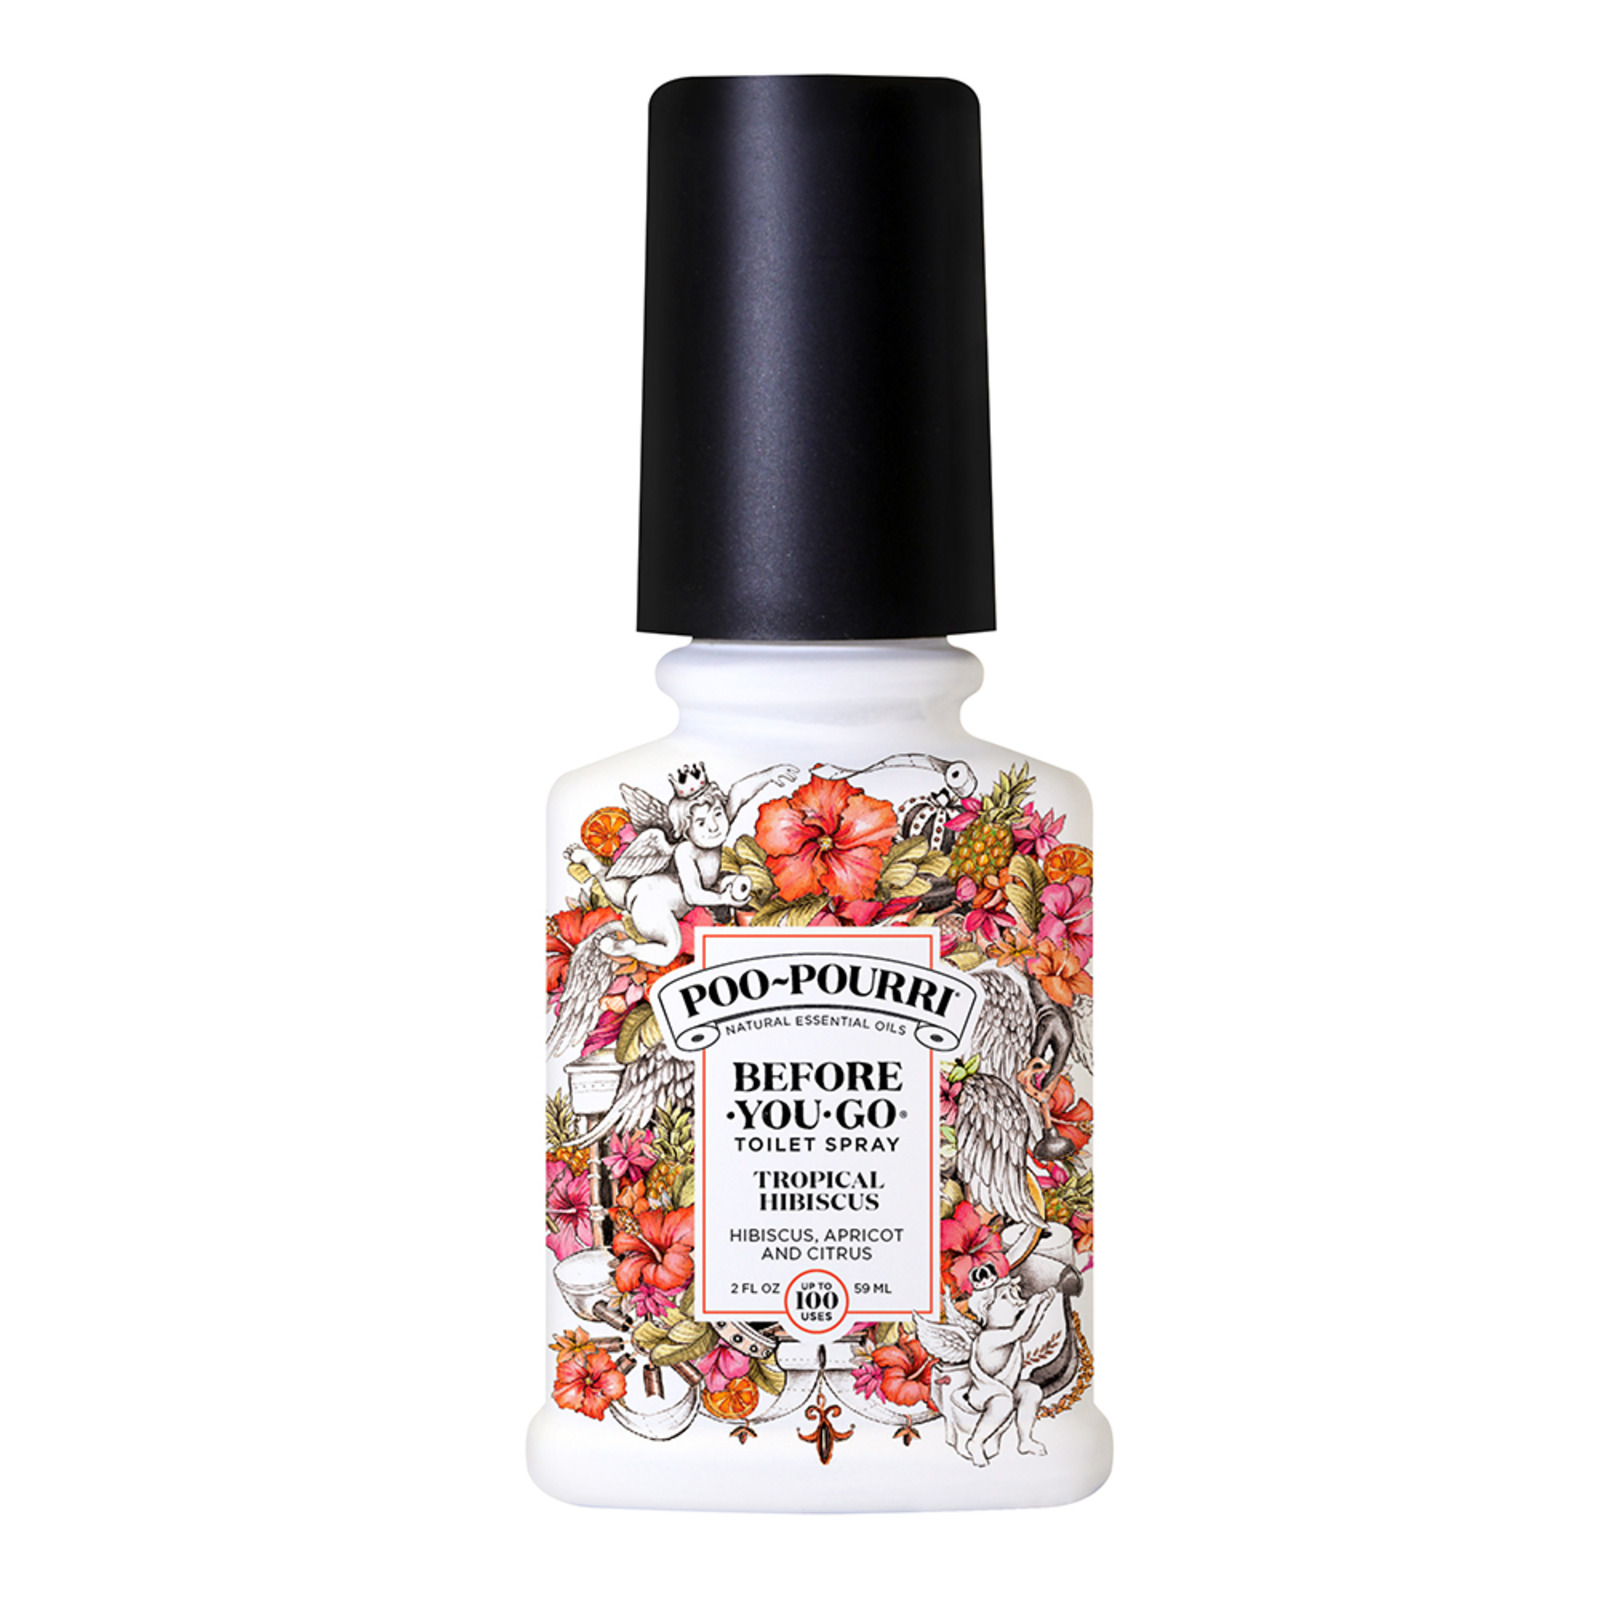 Poo Pourri Toilet Spray 59ml - Tropical Hibiscus